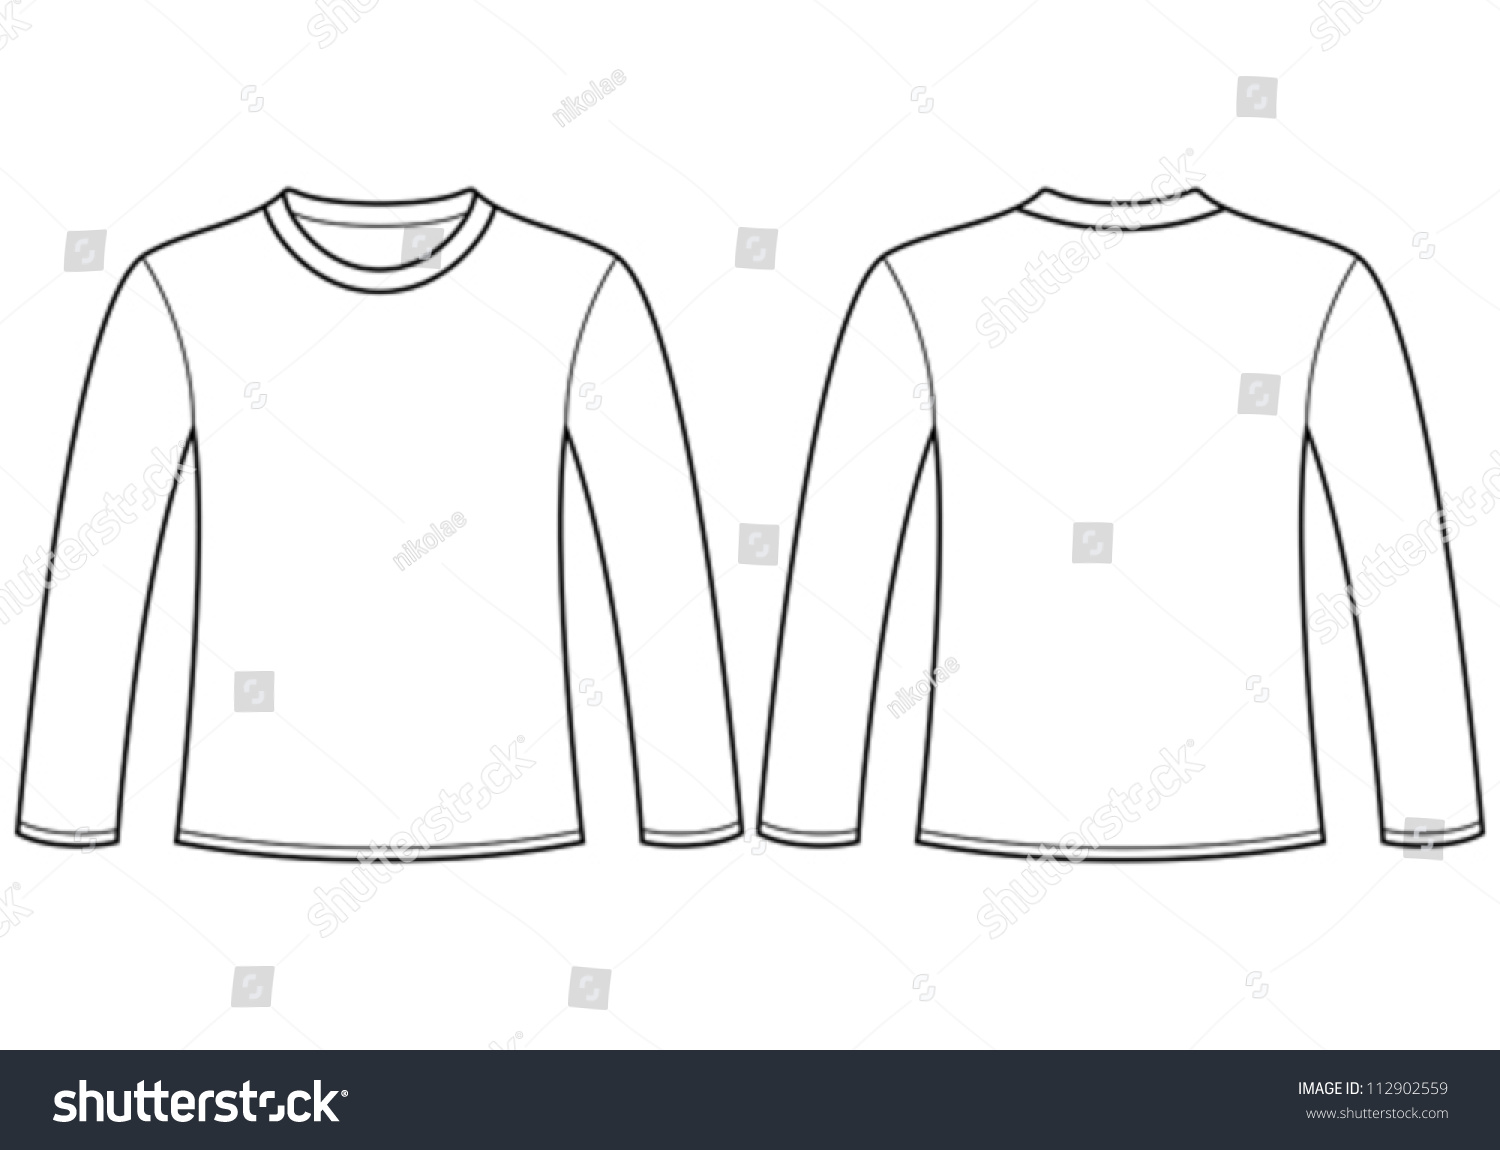 Royalty-free Long-sleeved T-shirt template #112902559 Stock Photo ...